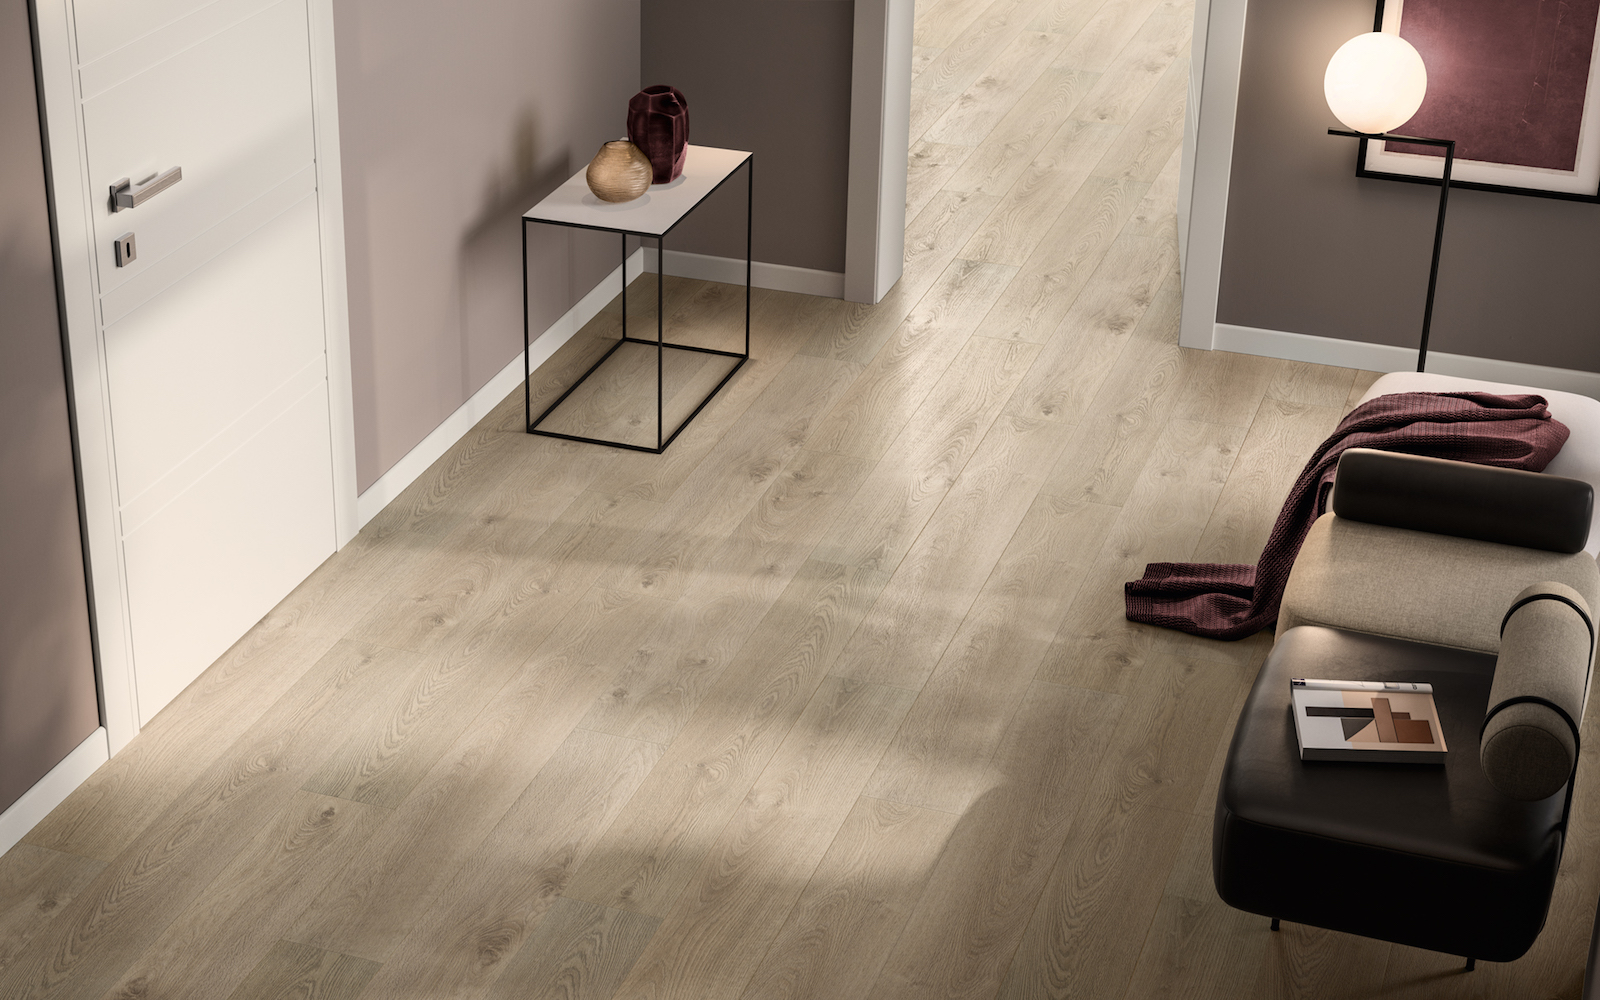 Pavimento Scuro O Chiaro : New generation floors pavimenti in laminato u garofoli